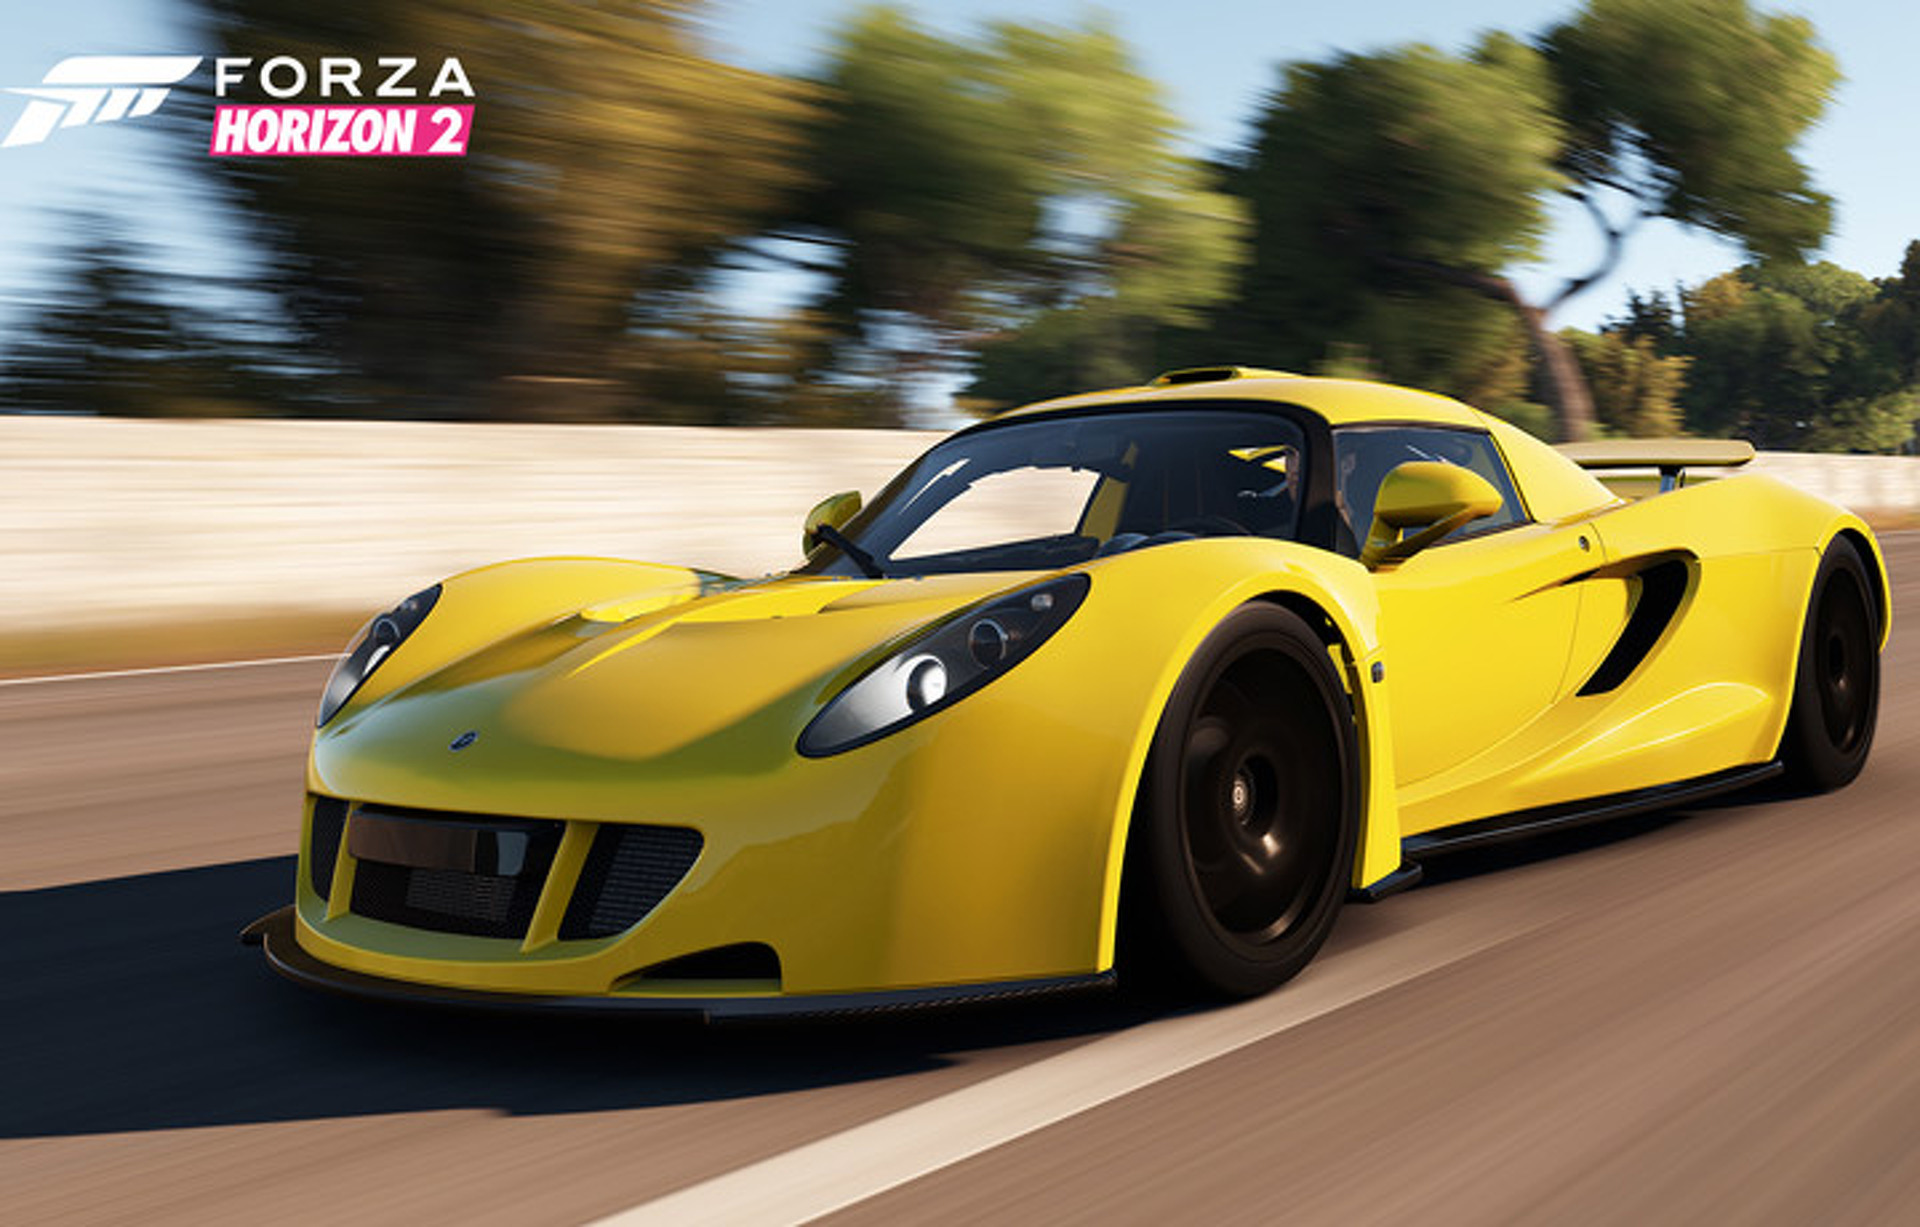 bugatti veyron and hennessey venom gt confirmed for forza horizon 2. Black Bedroom Furniture Sets. Home Design Ideas